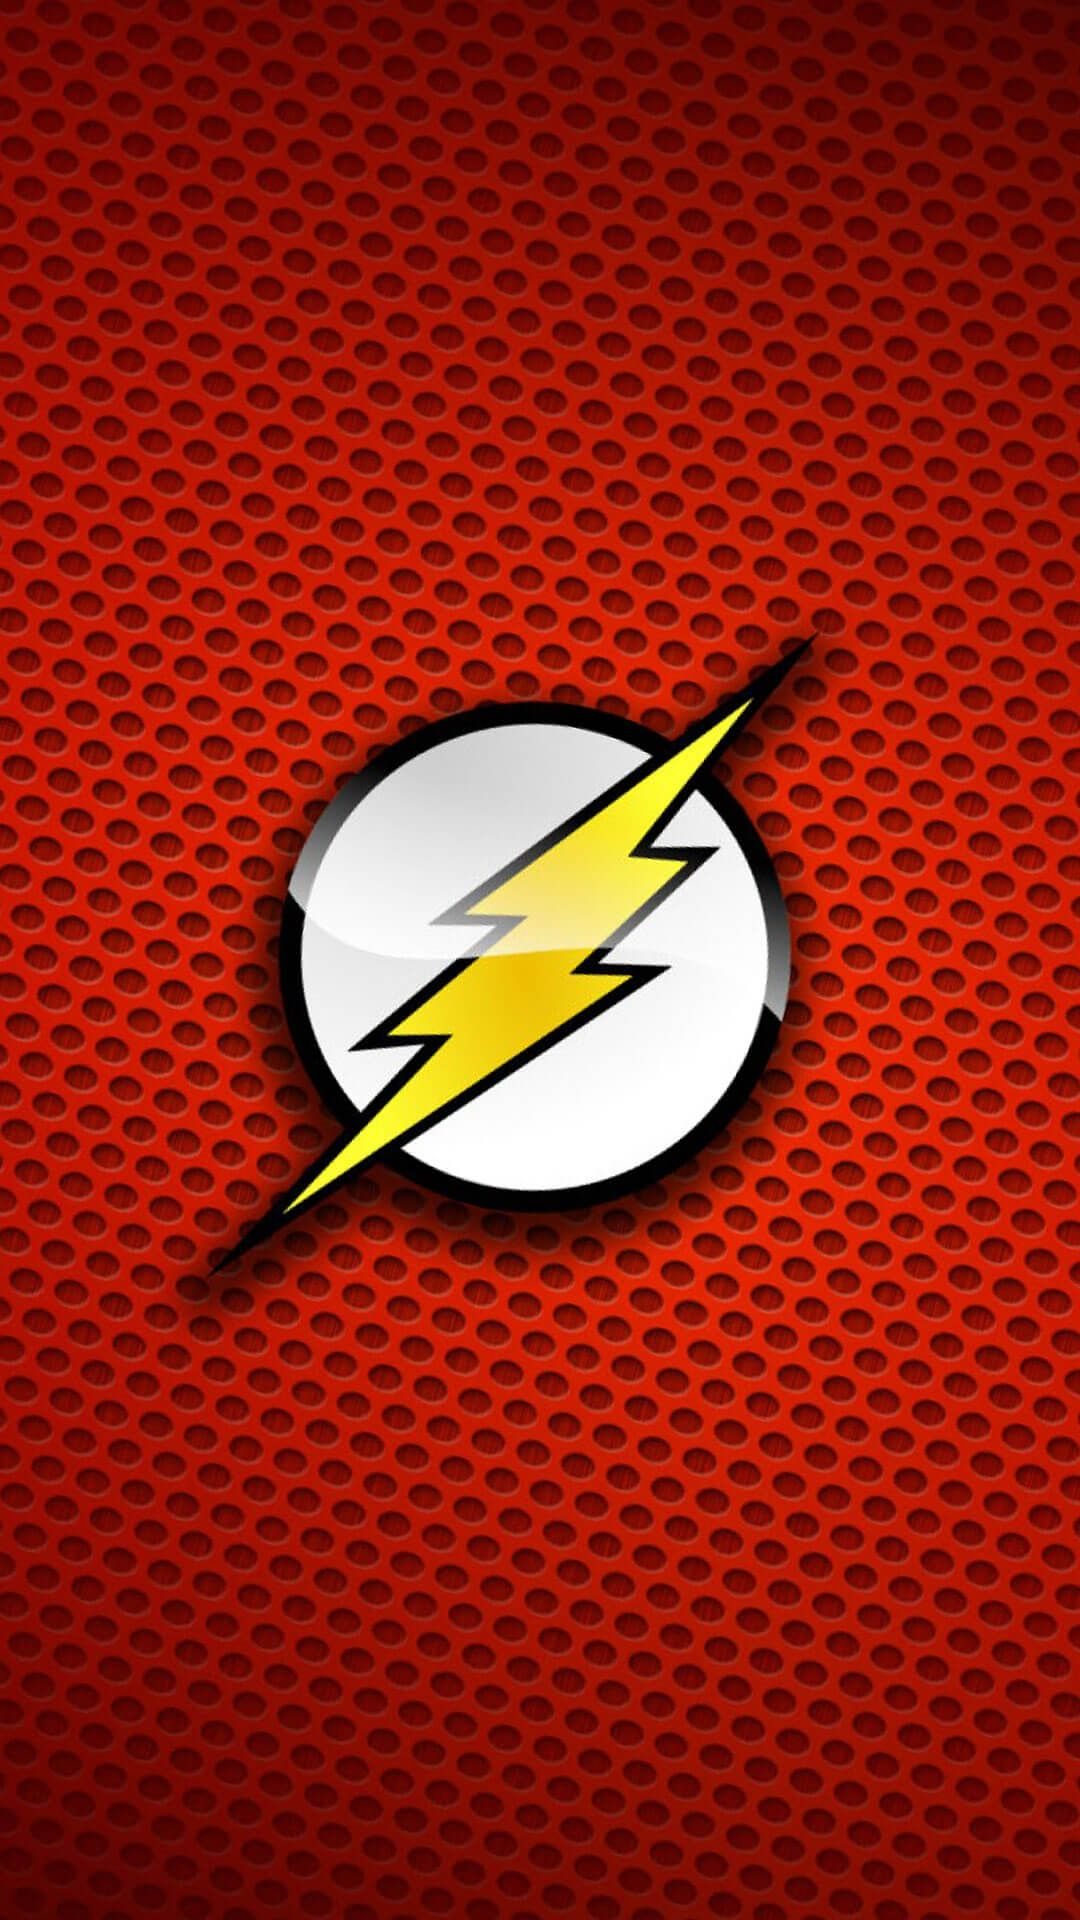 flash wallpaper iphone 6 the flash logo iphone 6 wallpaper | the